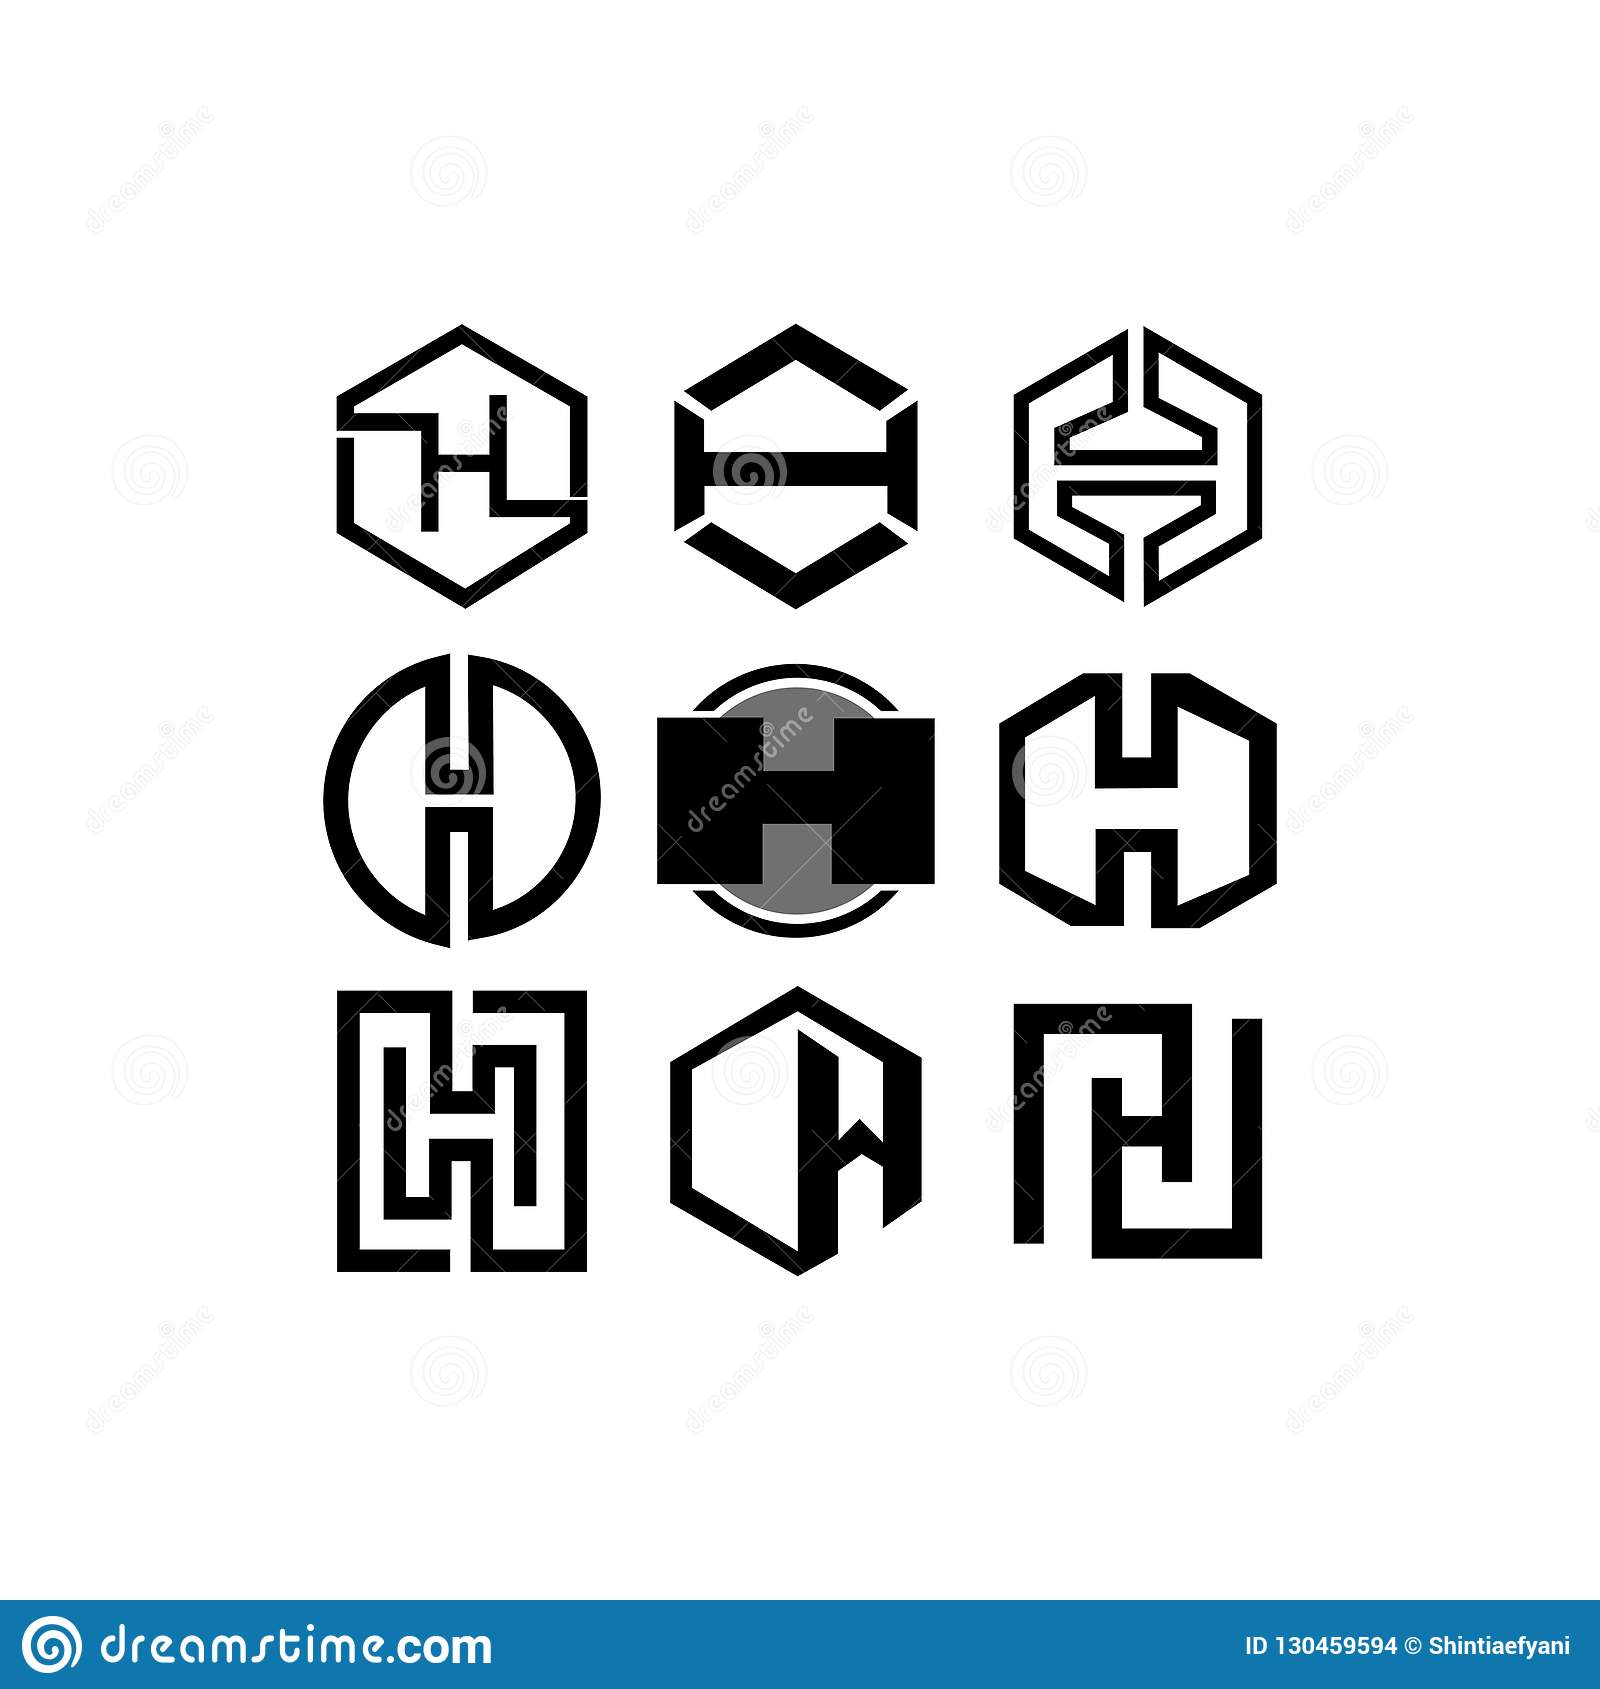 7ad73082f74 Letter H logo icon design template elements. Abstract vector icon. Royalty- Free Illustration